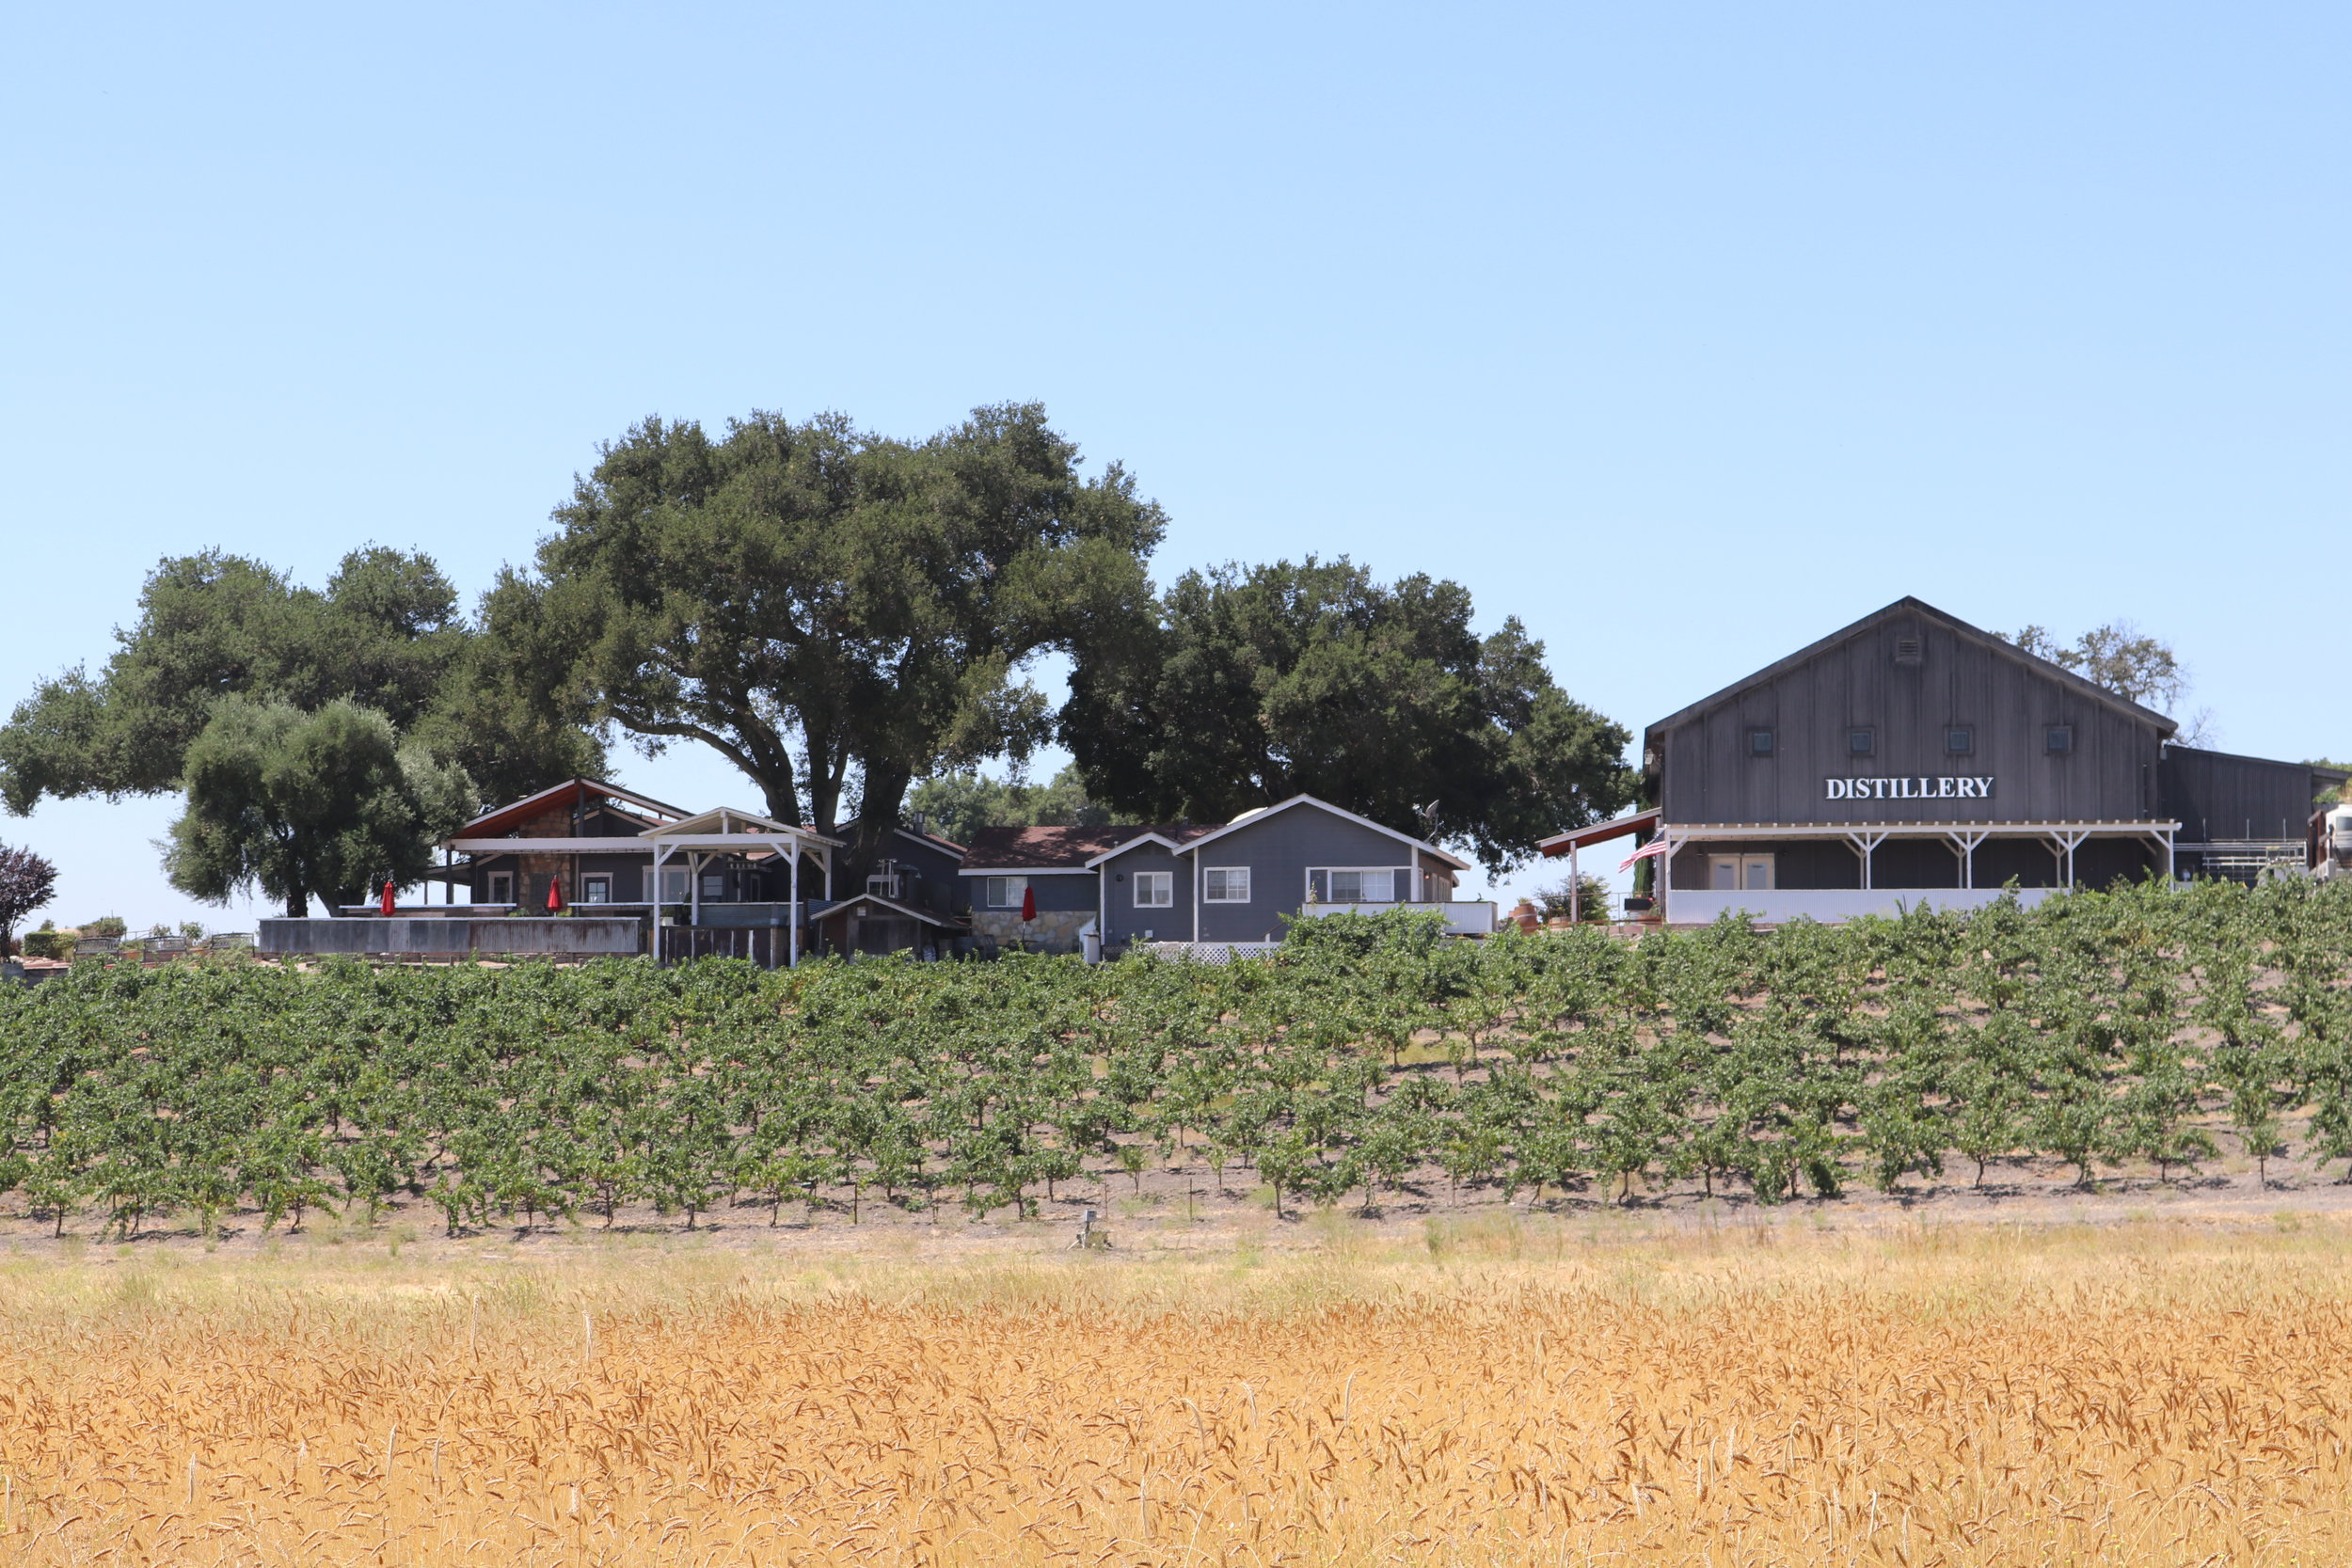 Distillery and winery property with rye grain and wine grapes planted below the tasting rooms and production facilities.